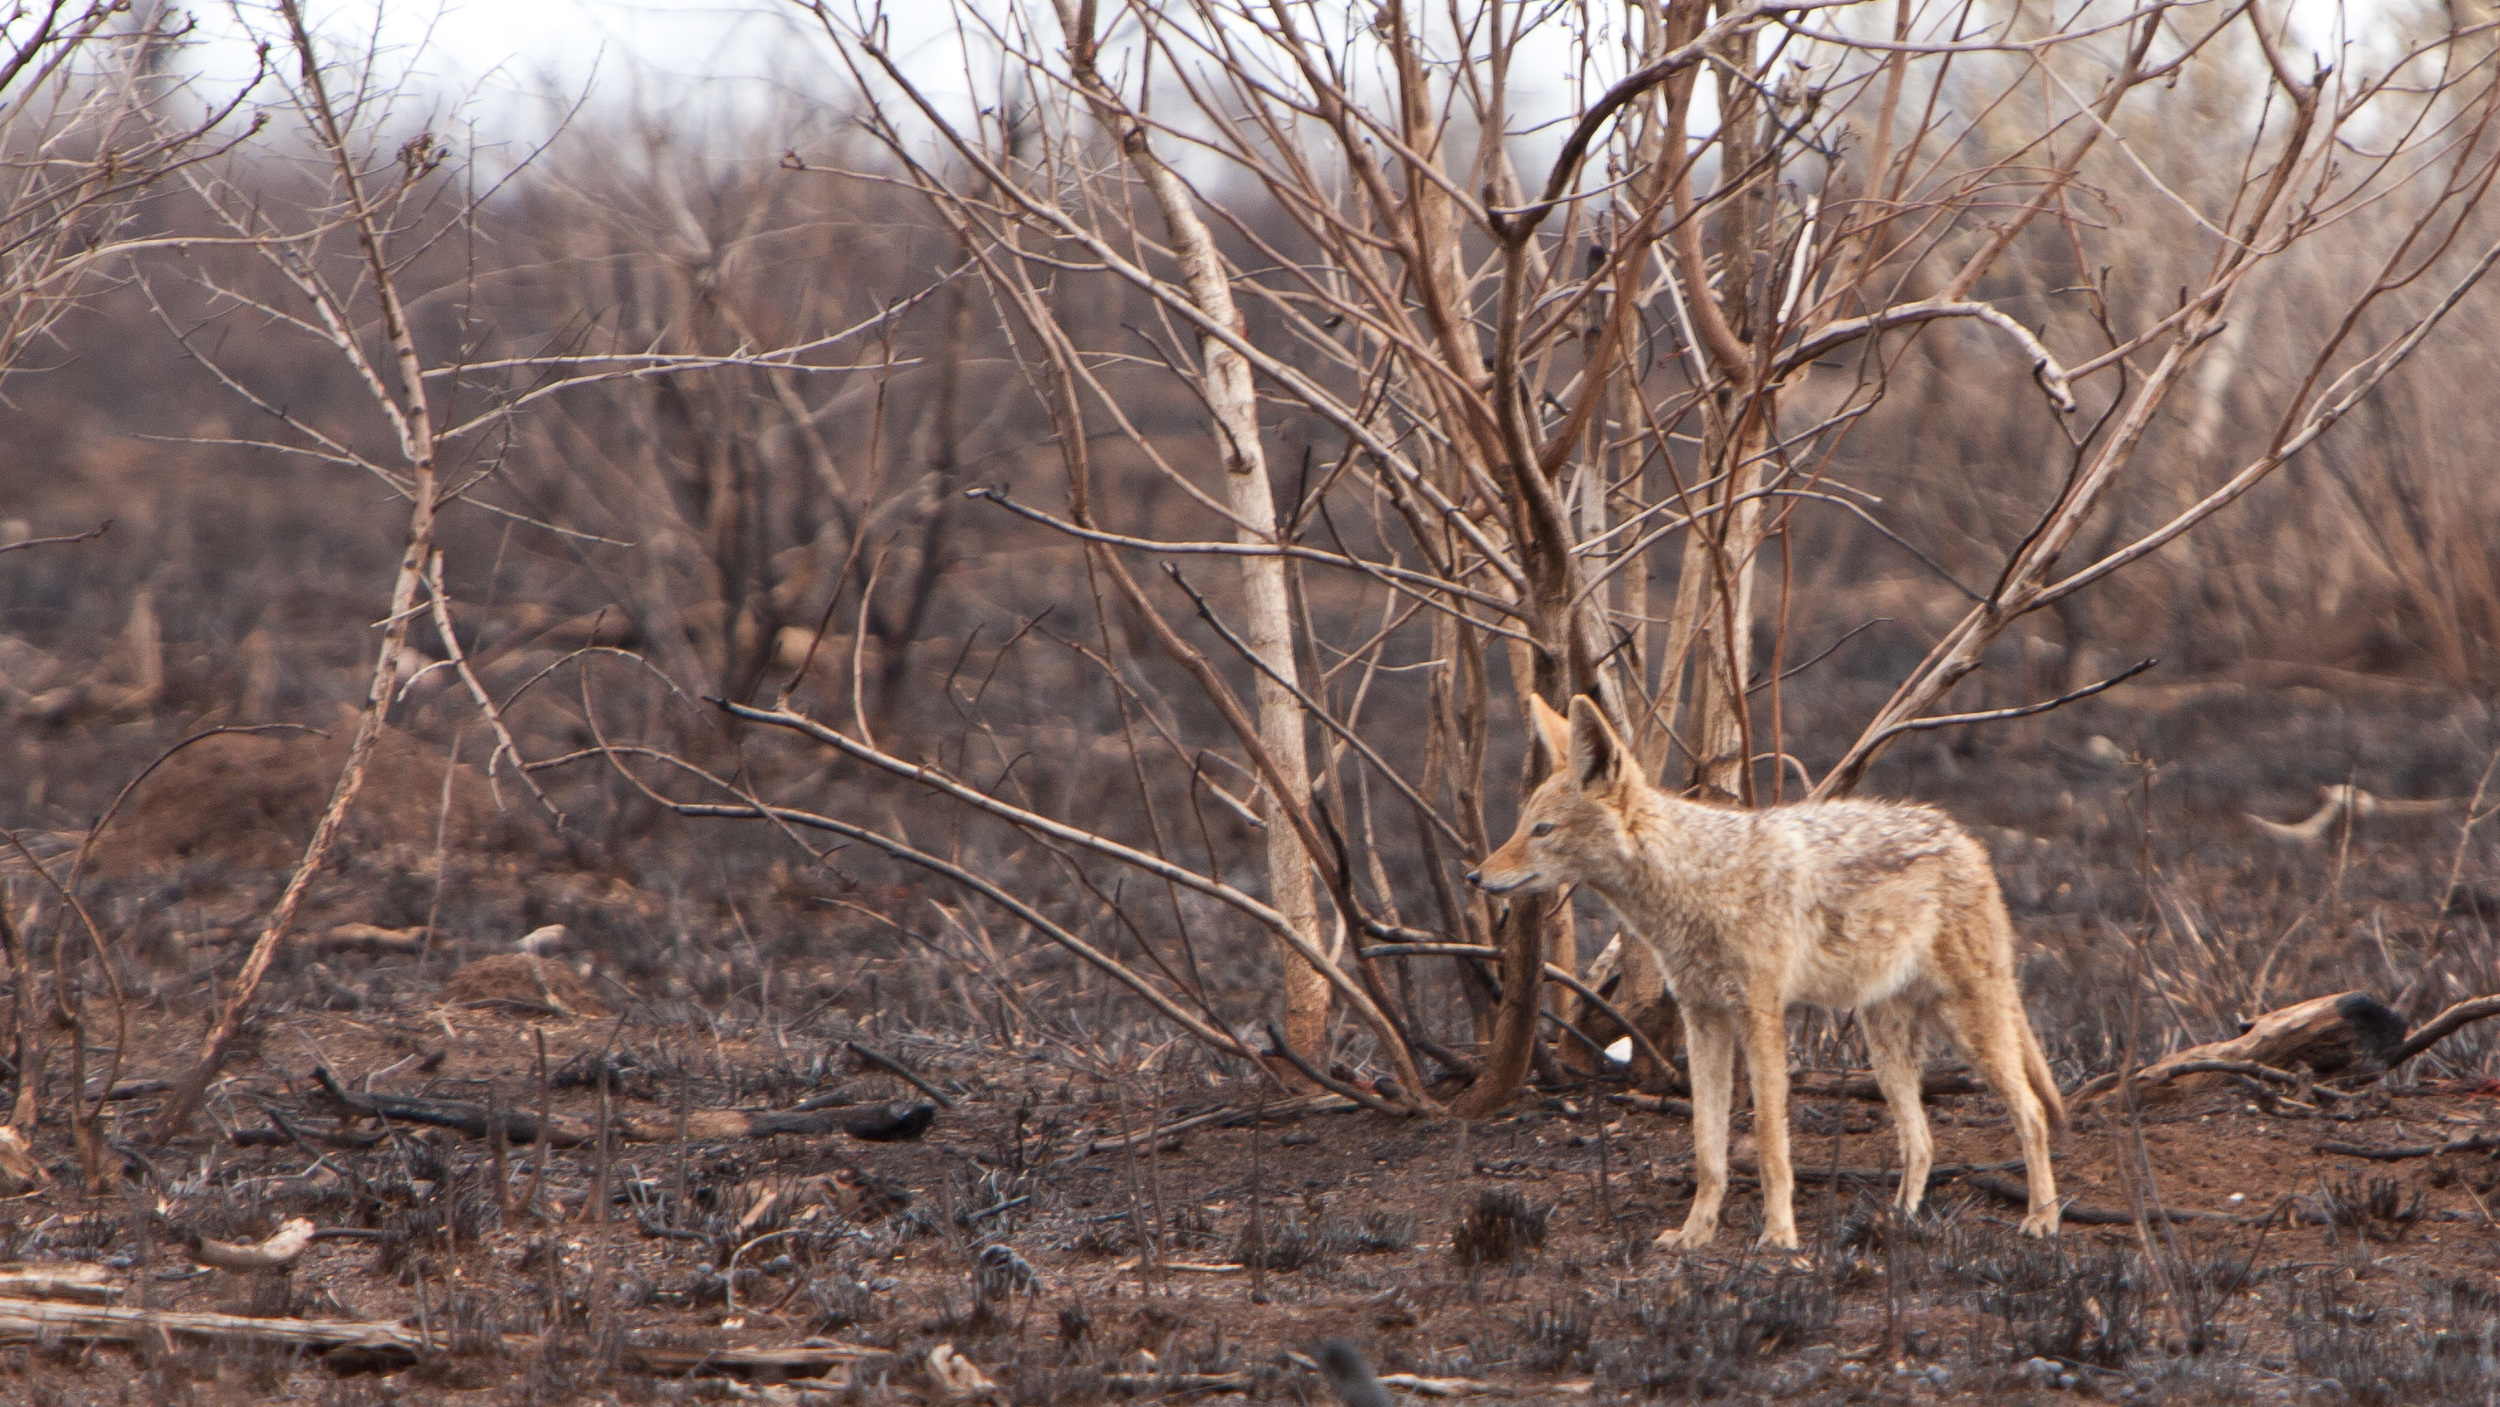 A Jackel stands on recently burnt ground